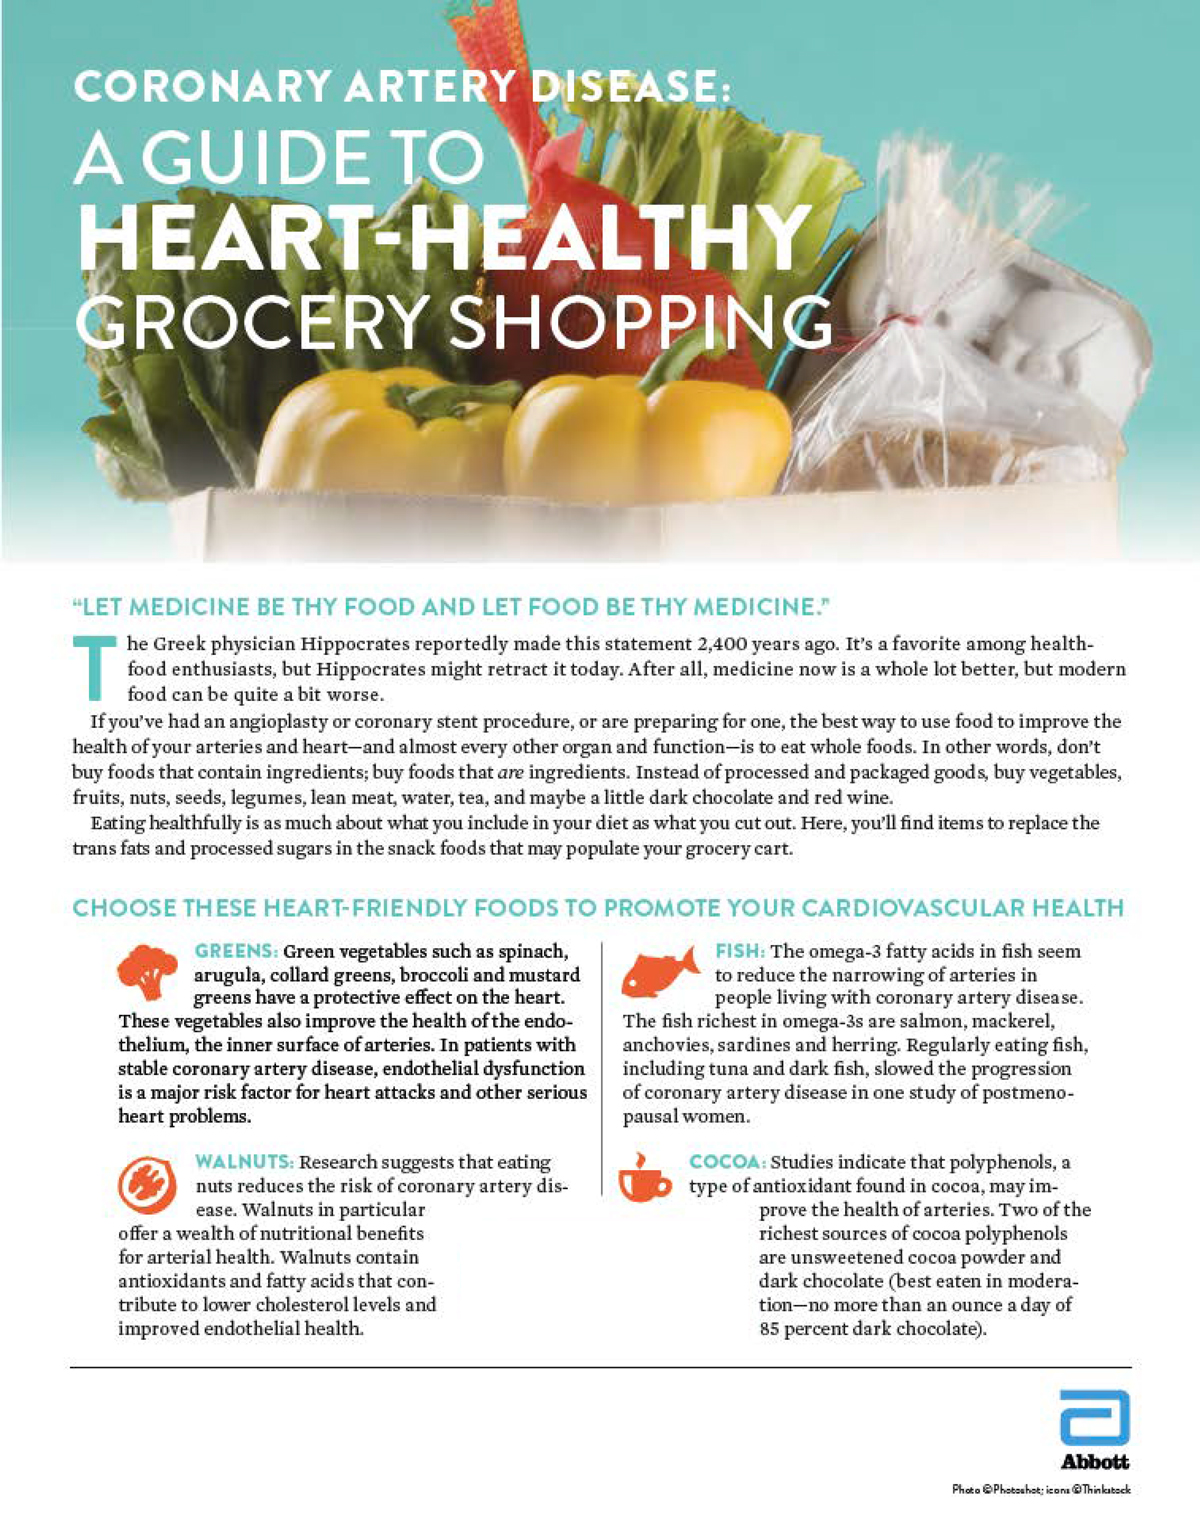 heart healthy foods guide